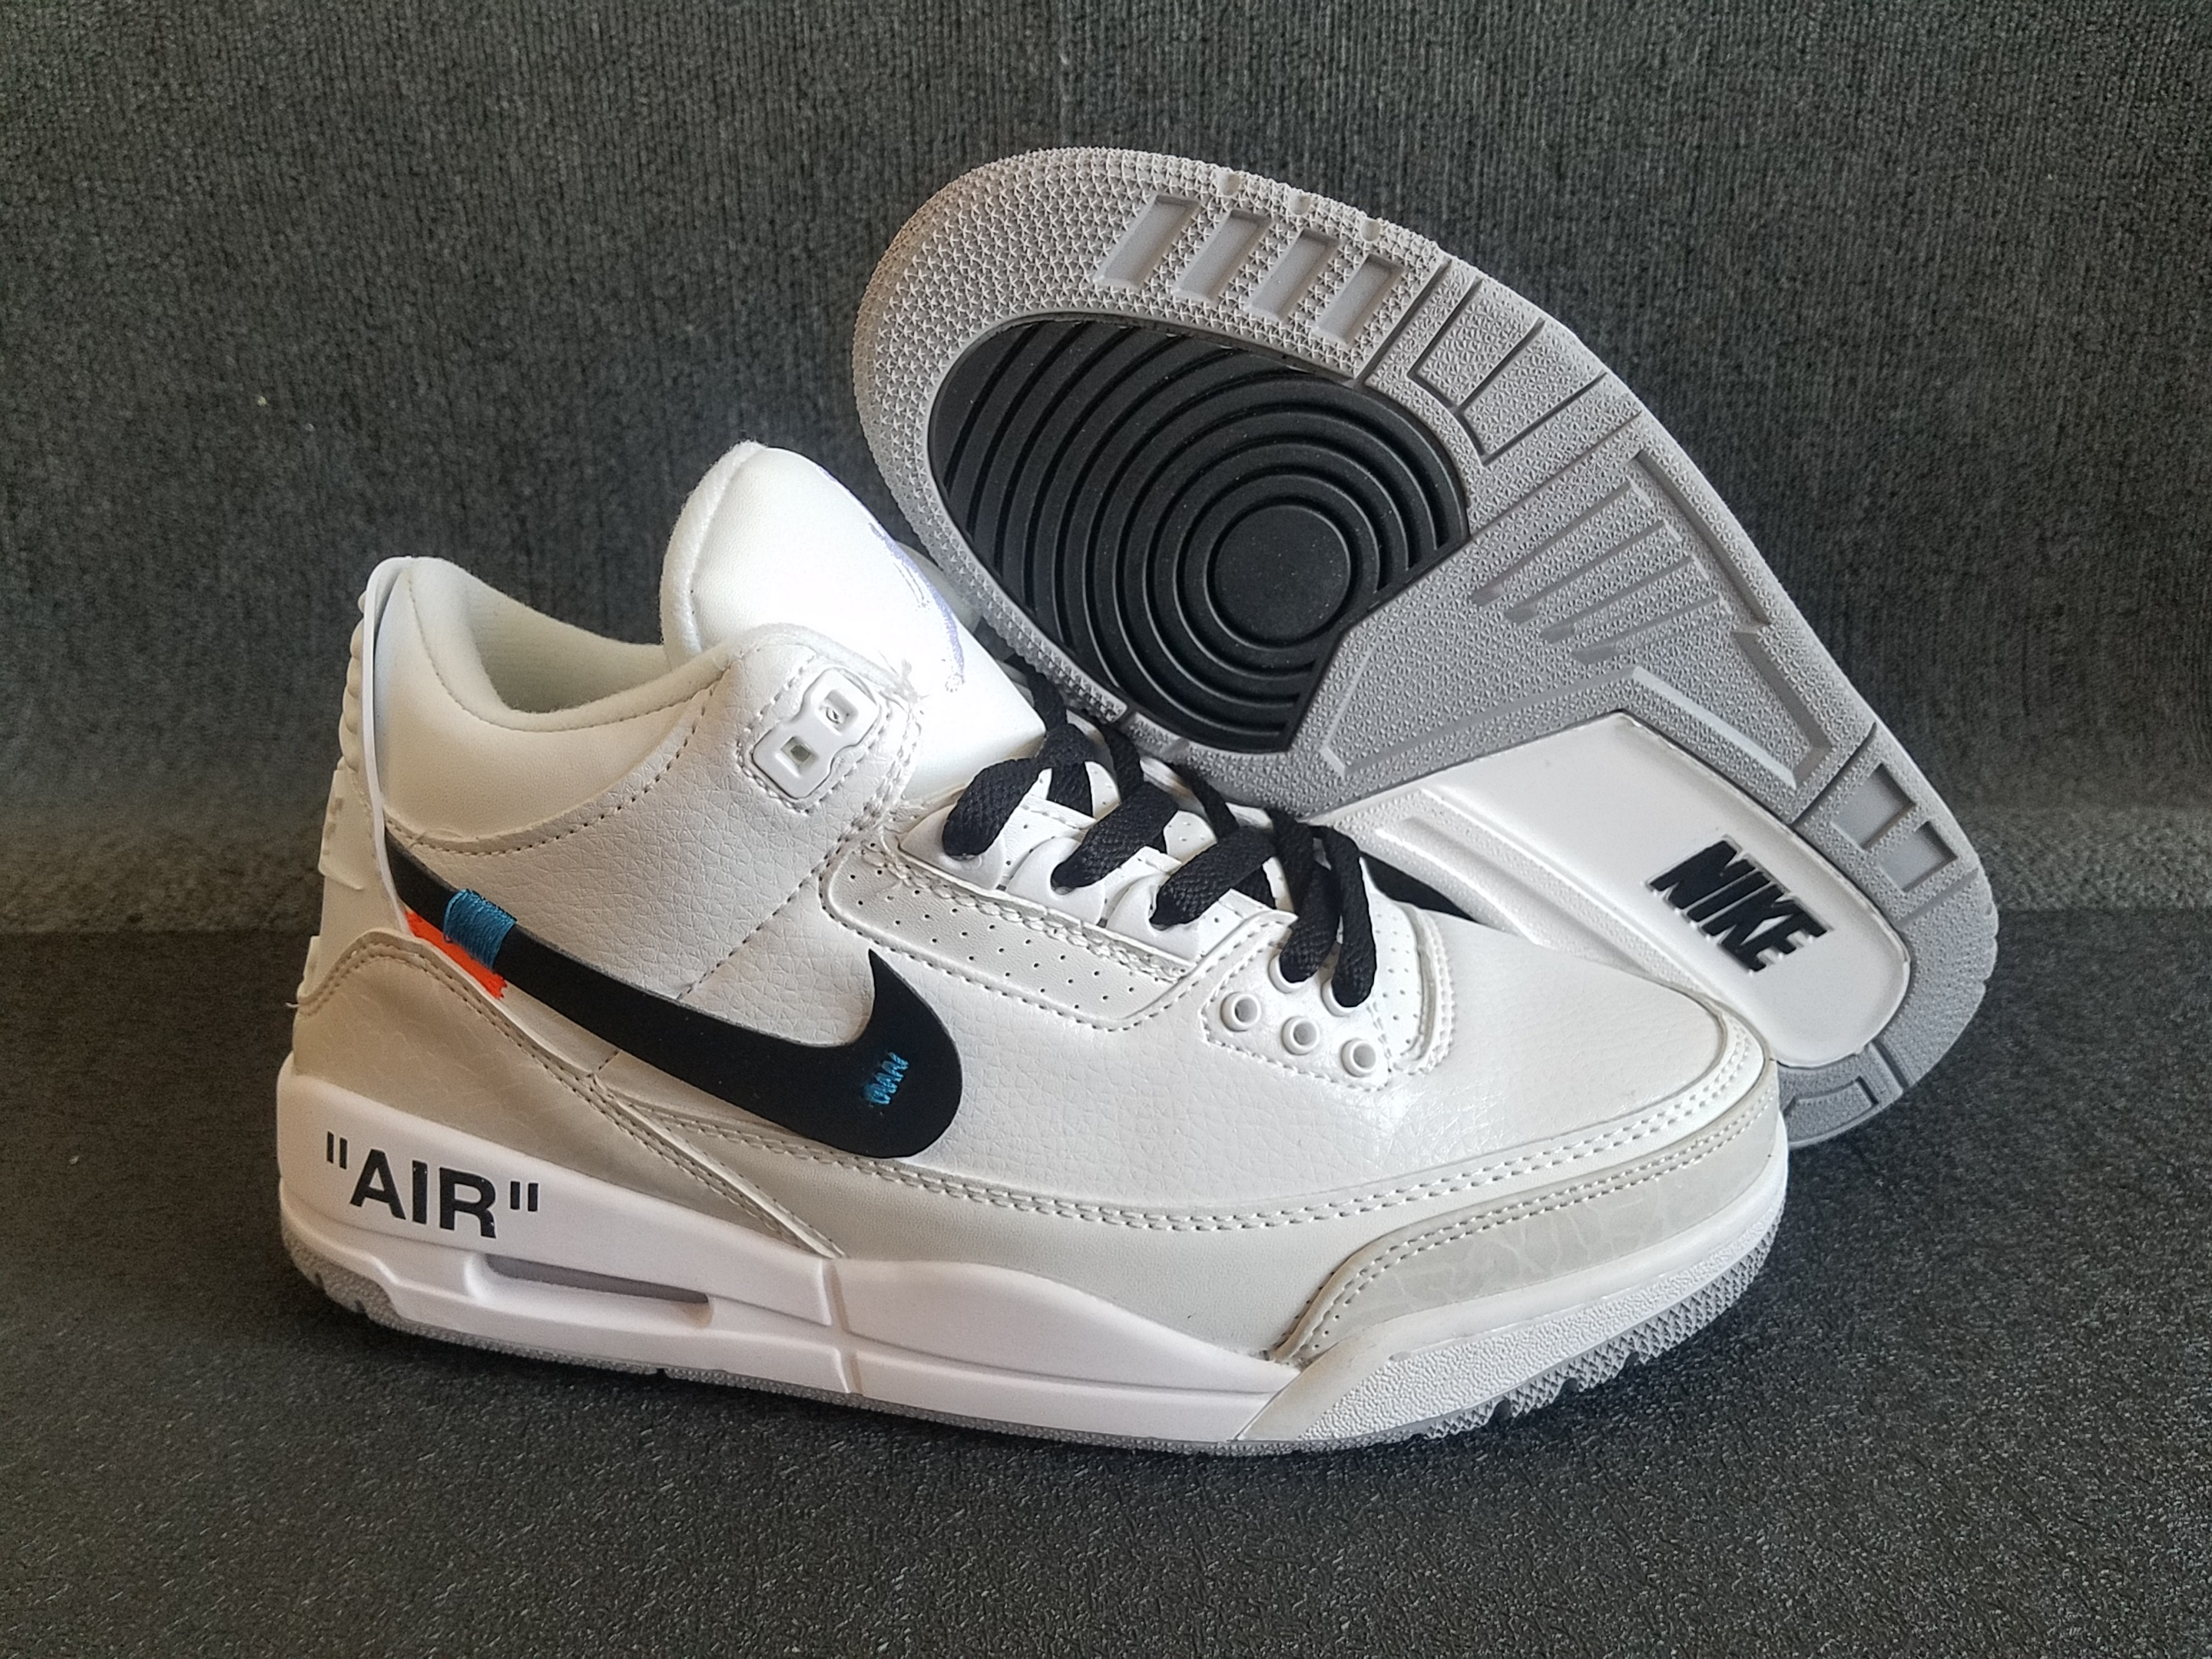 AJ3 x off white &black shoes